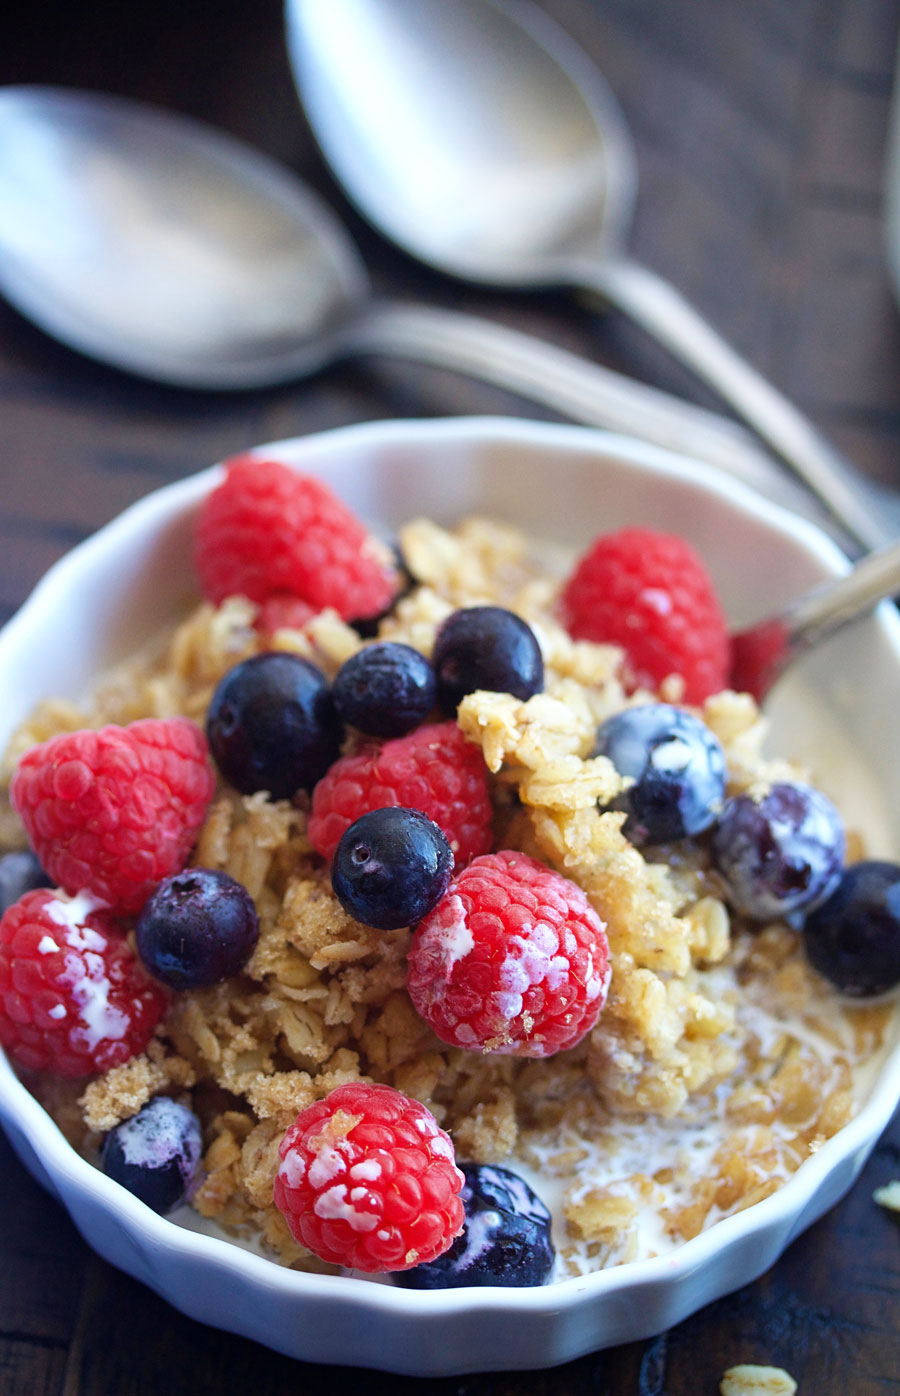 up close shot of a bowl of baked oatmeal with fresh berries